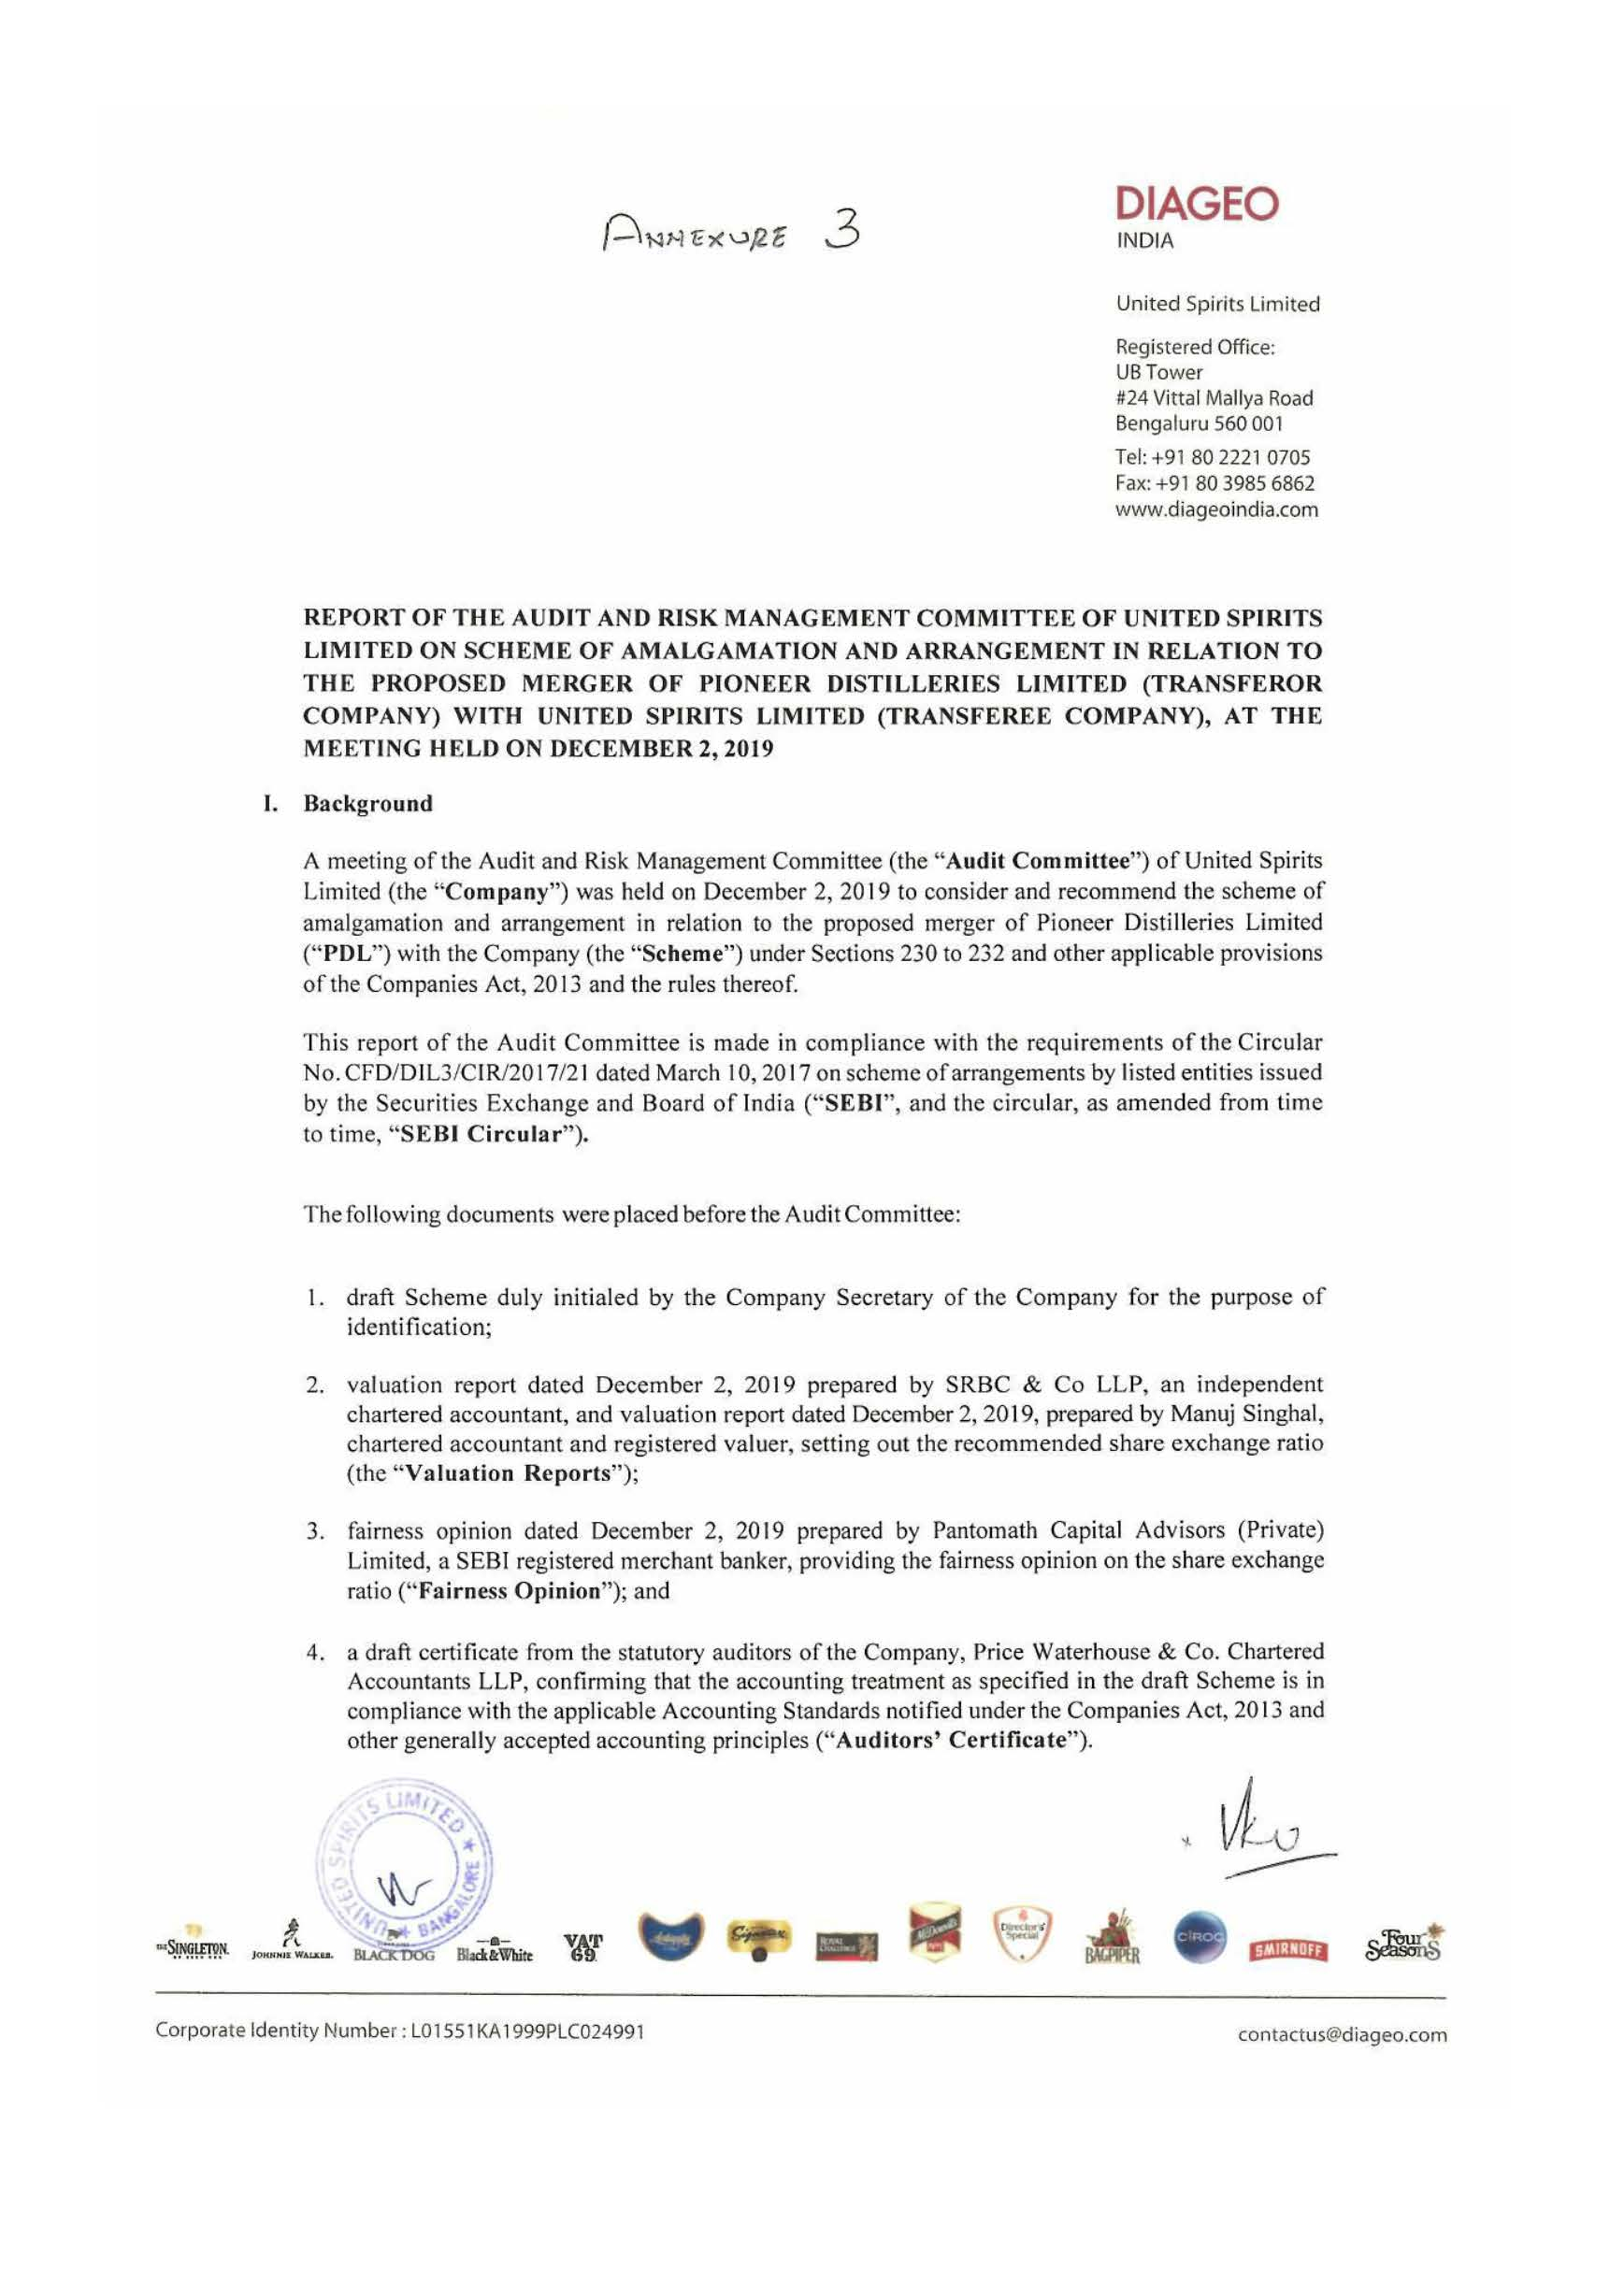 Report of Audit & Risk Management Committee of the Company